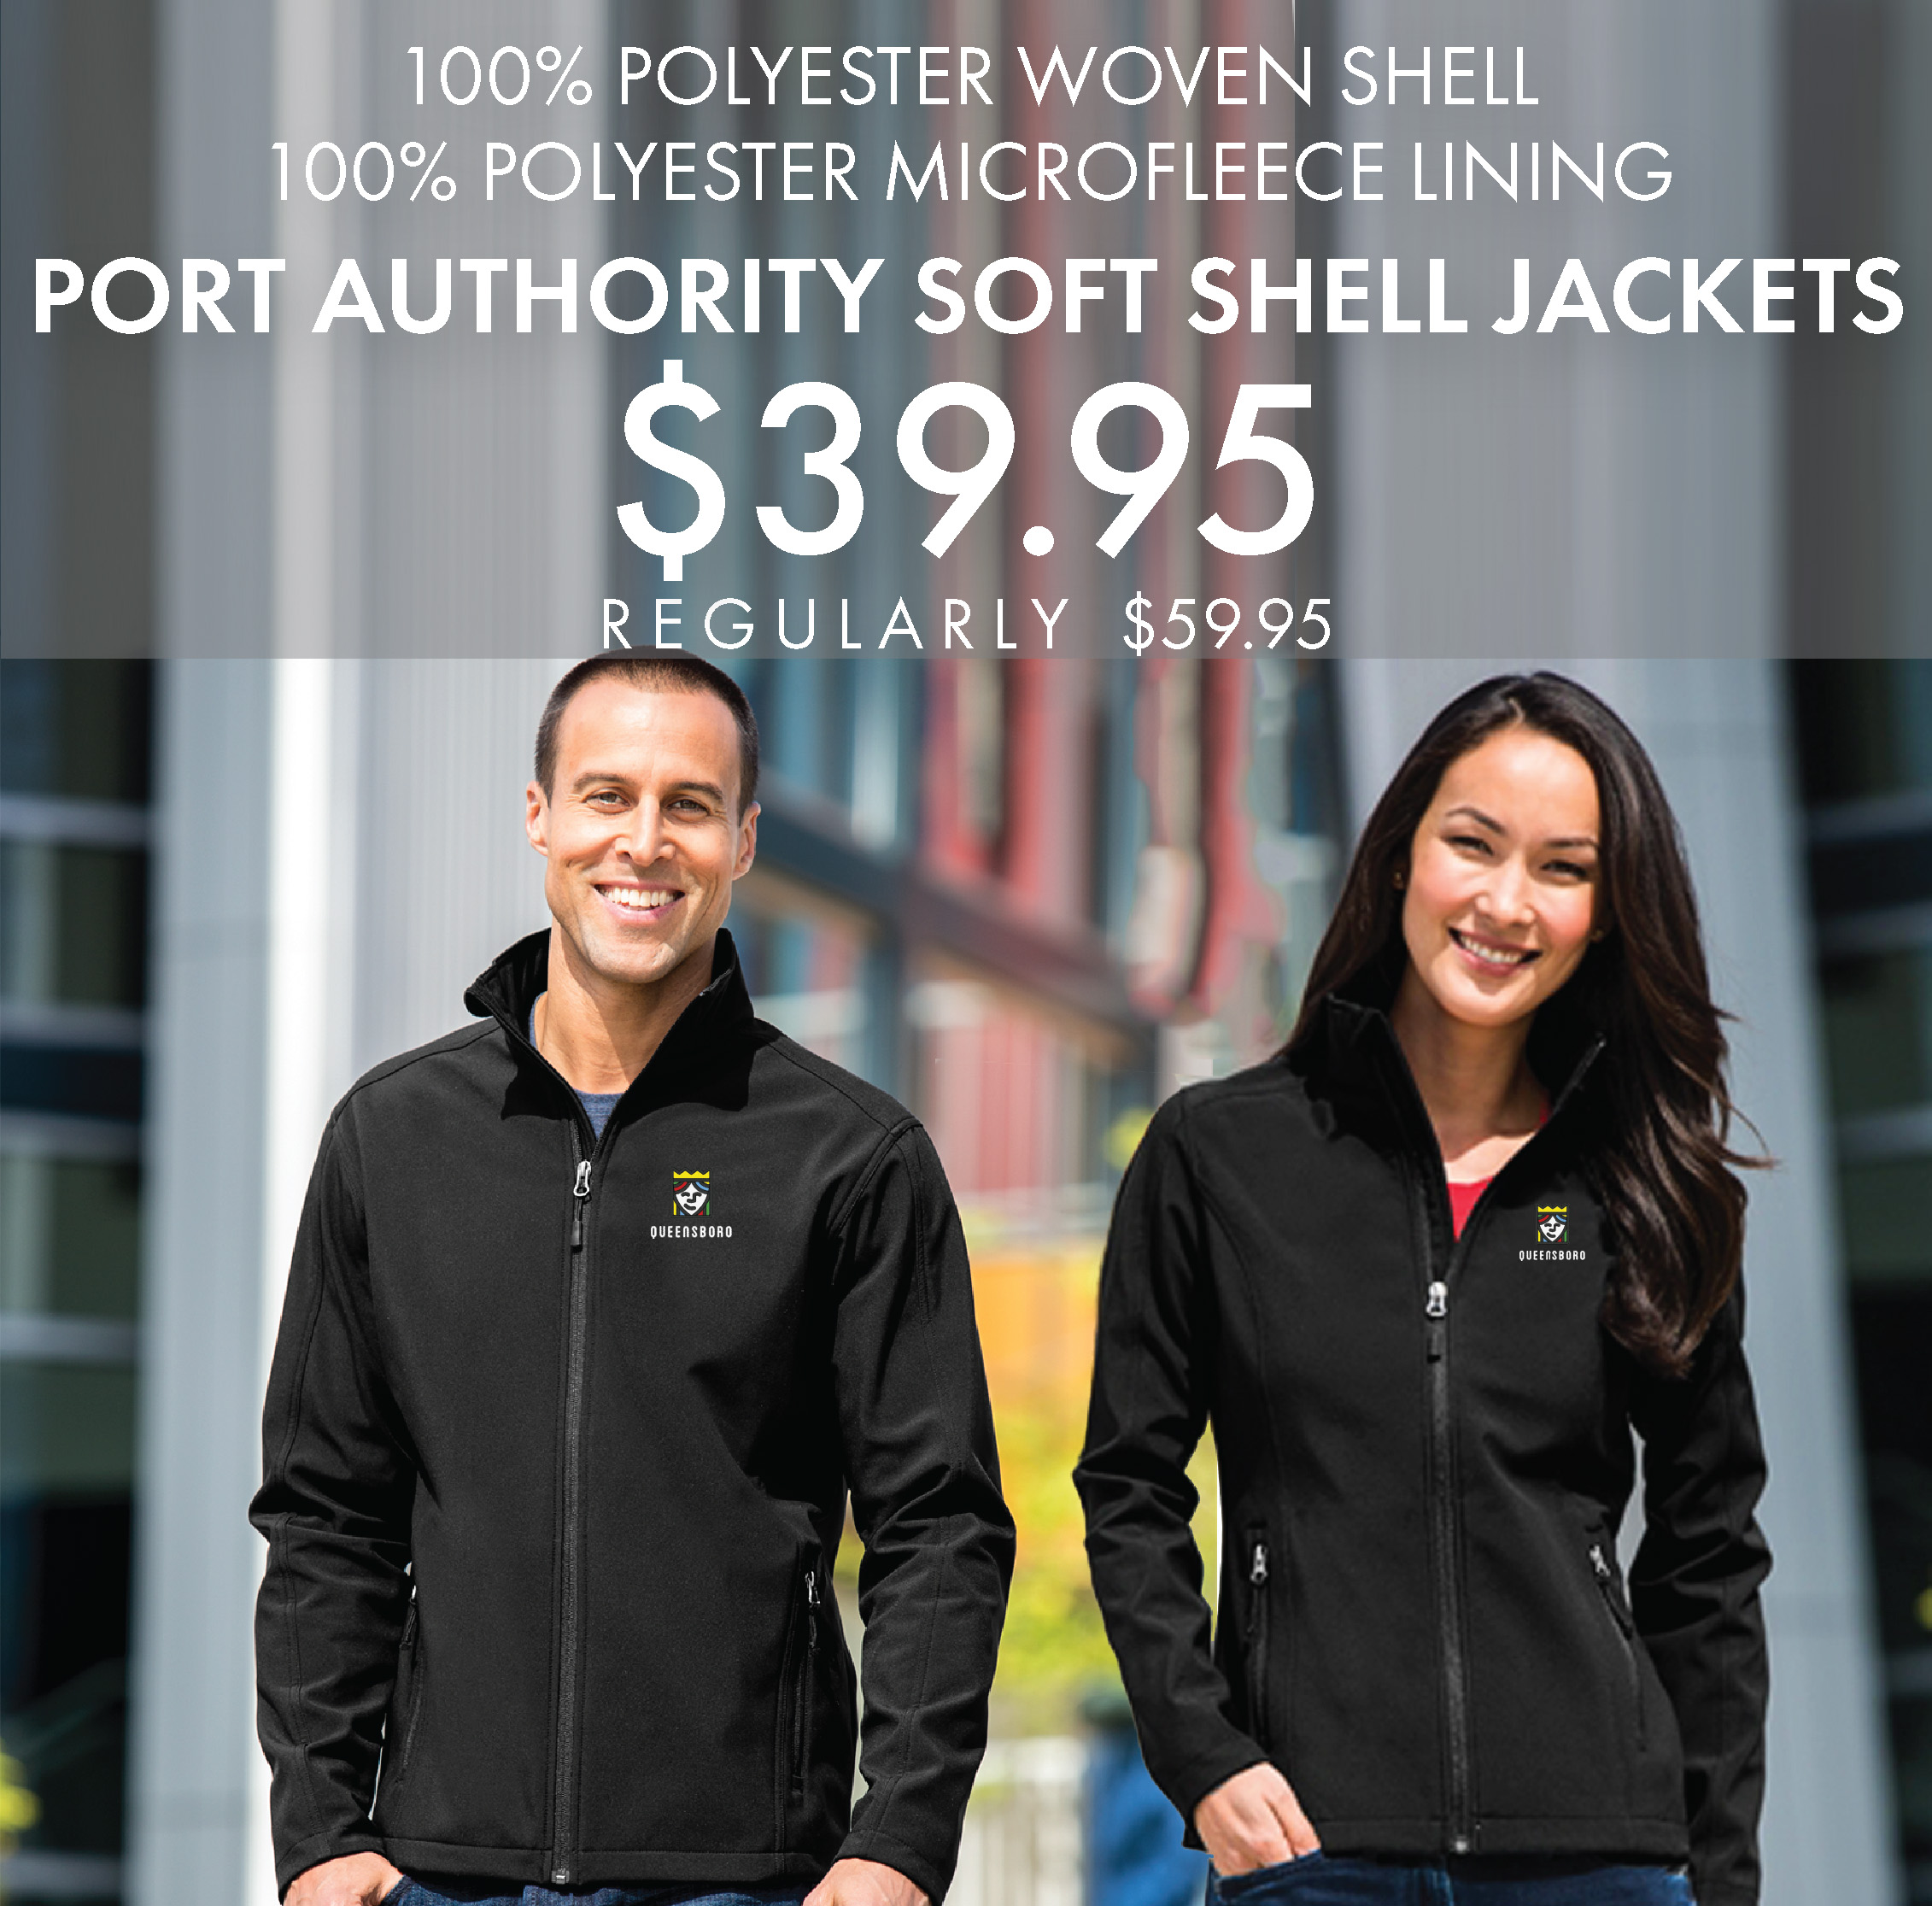 Custom Embroidered Port Authority Soft Shell Jackets